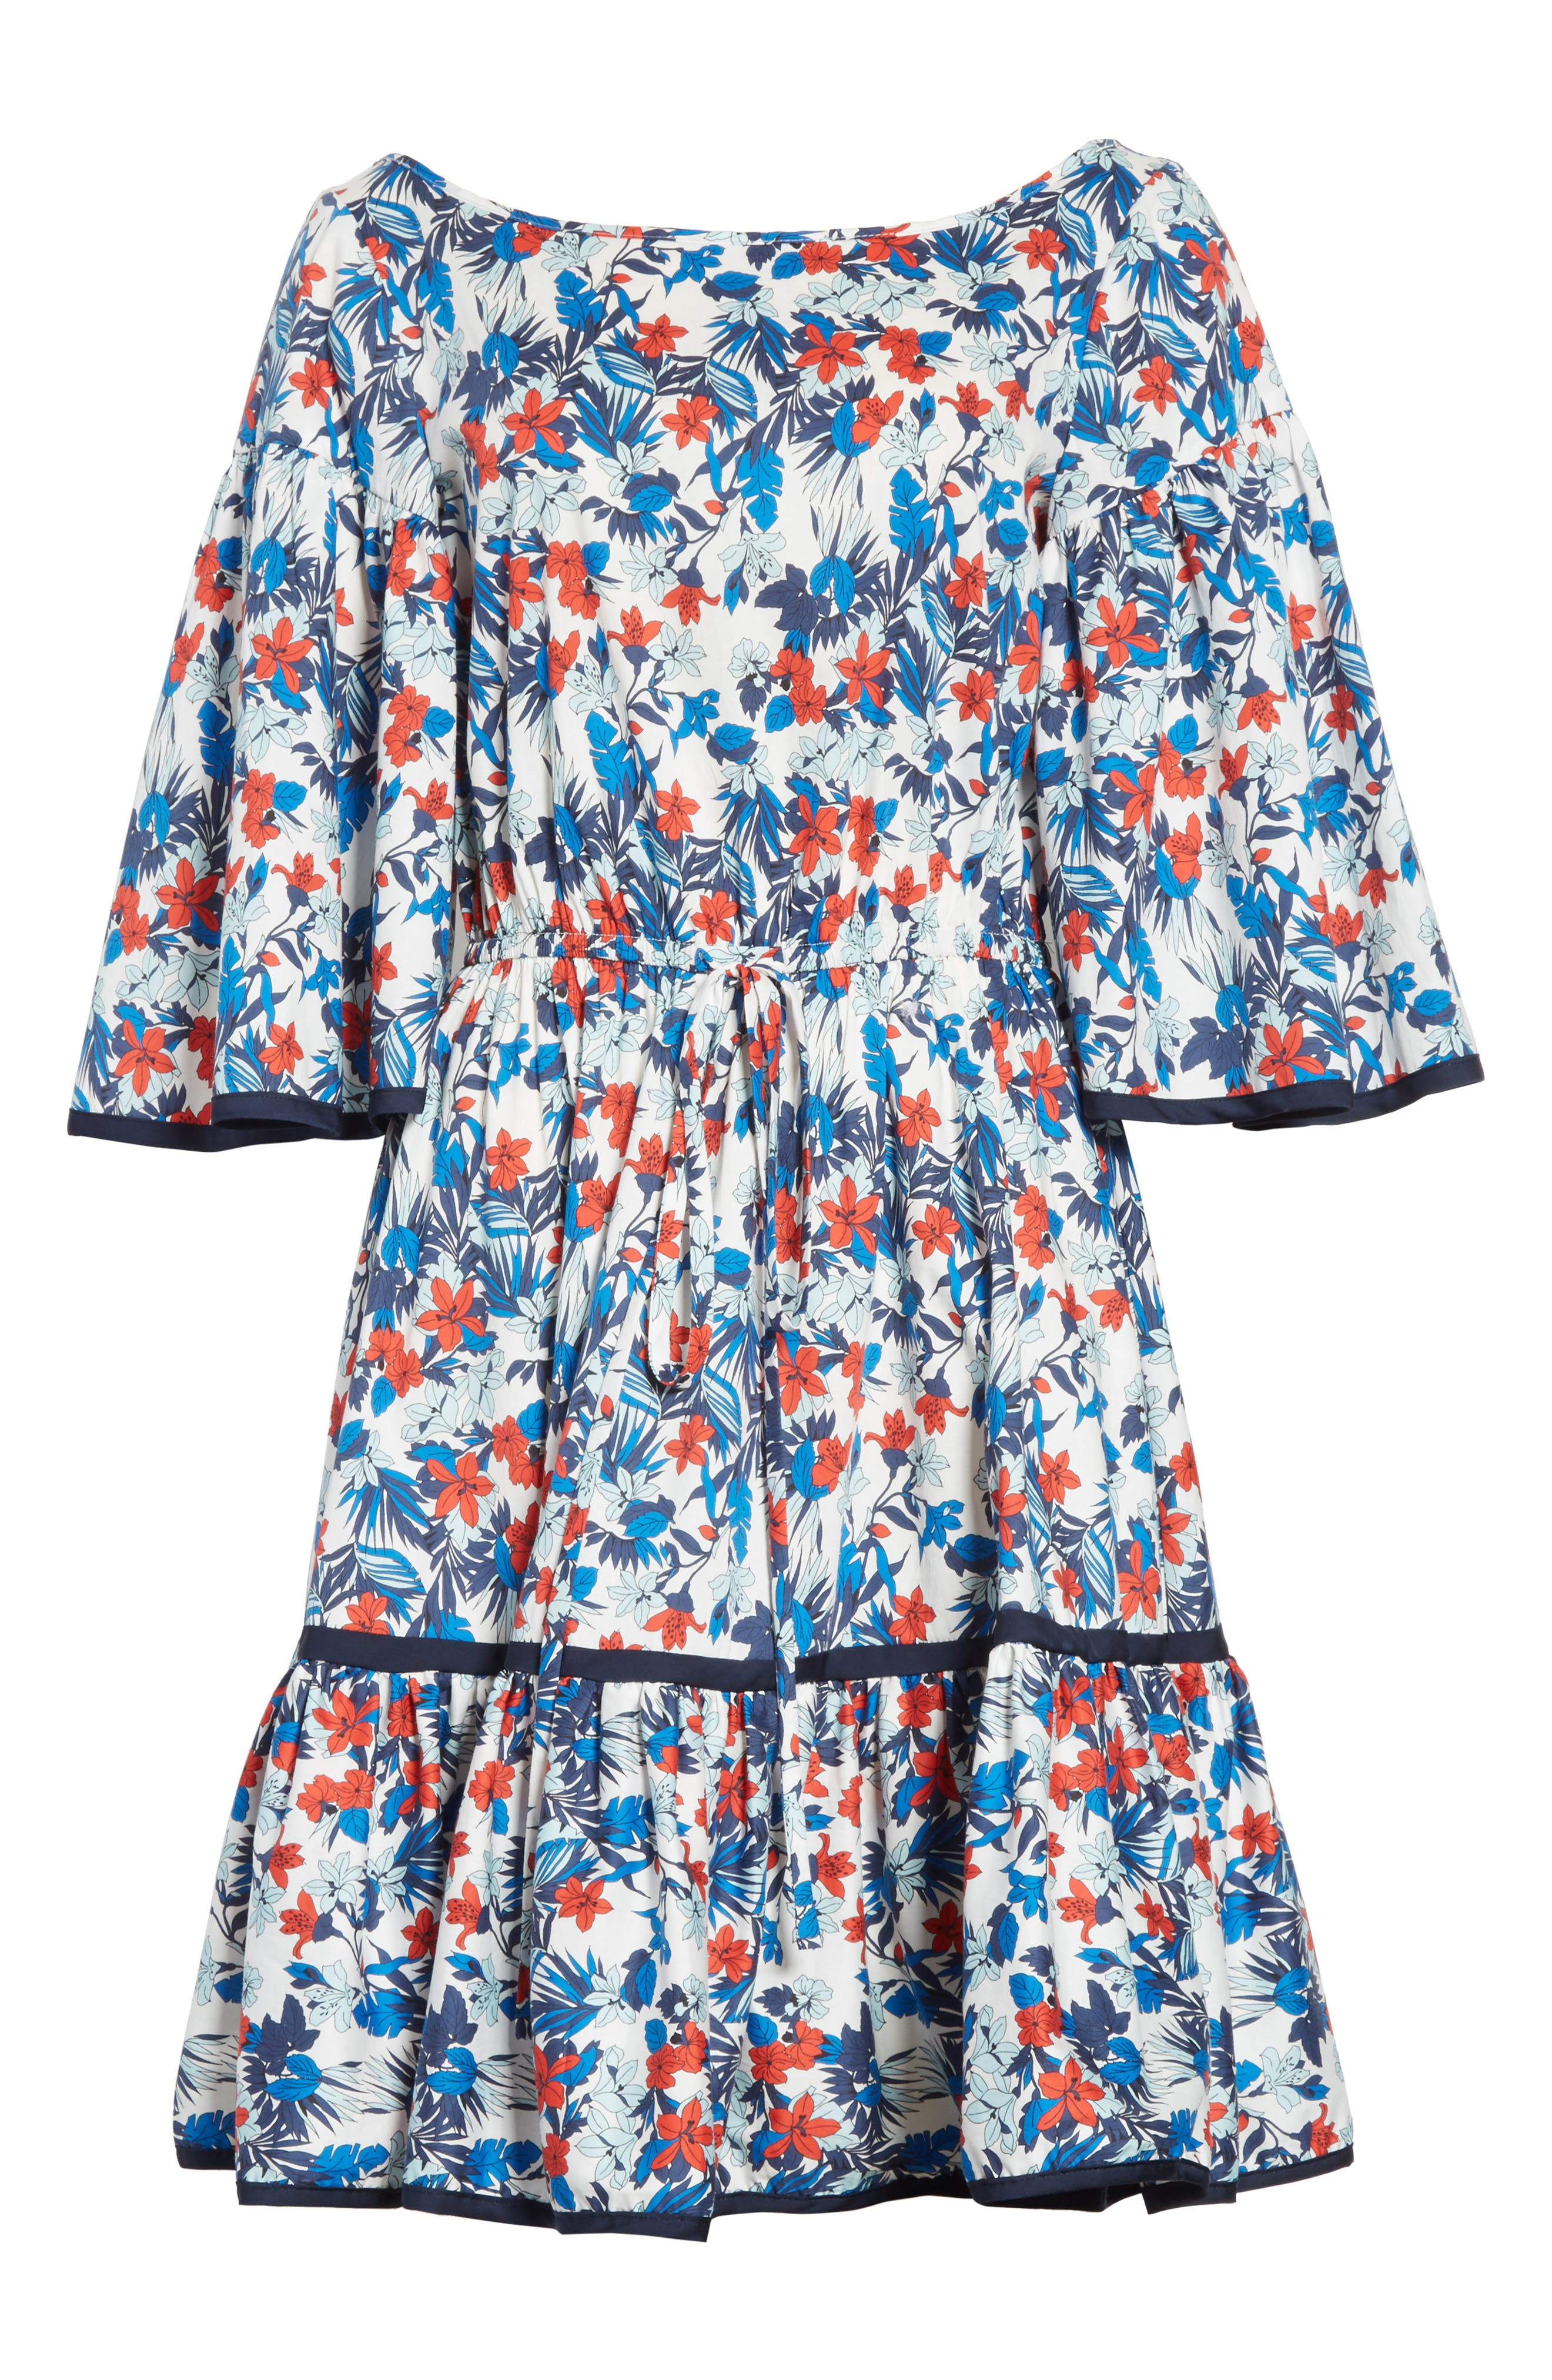 Hibiscus Print Fit & Flare Dress,                             Alternate thumbnail 6, color,                             433